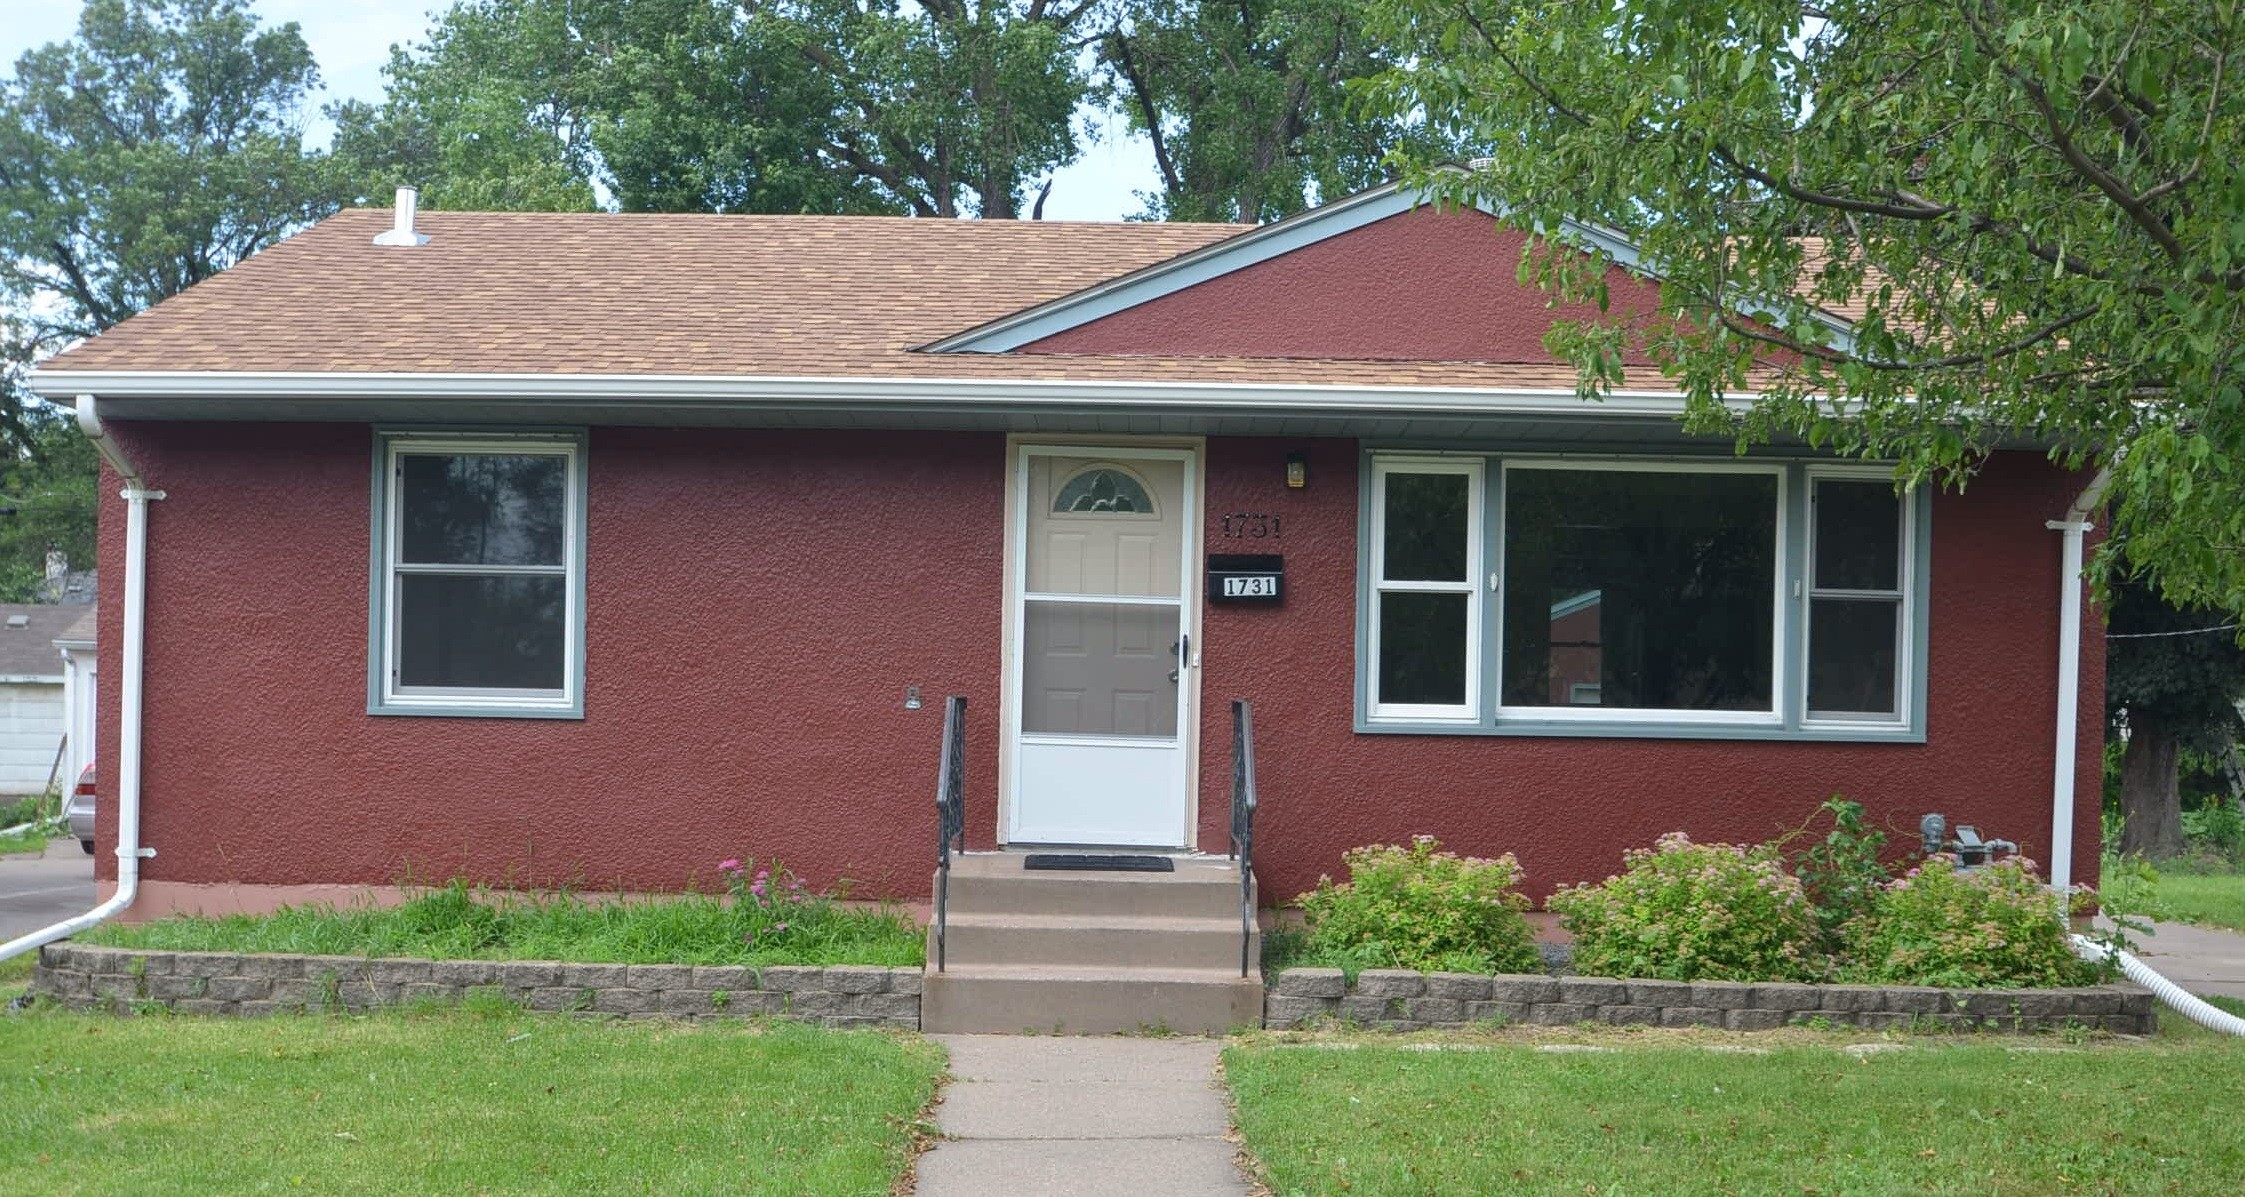 4 Bedroom House For Rent In St Paul Mn 1731 Idaho Ave E St Paul Mn 55106 4 Bedroom House For